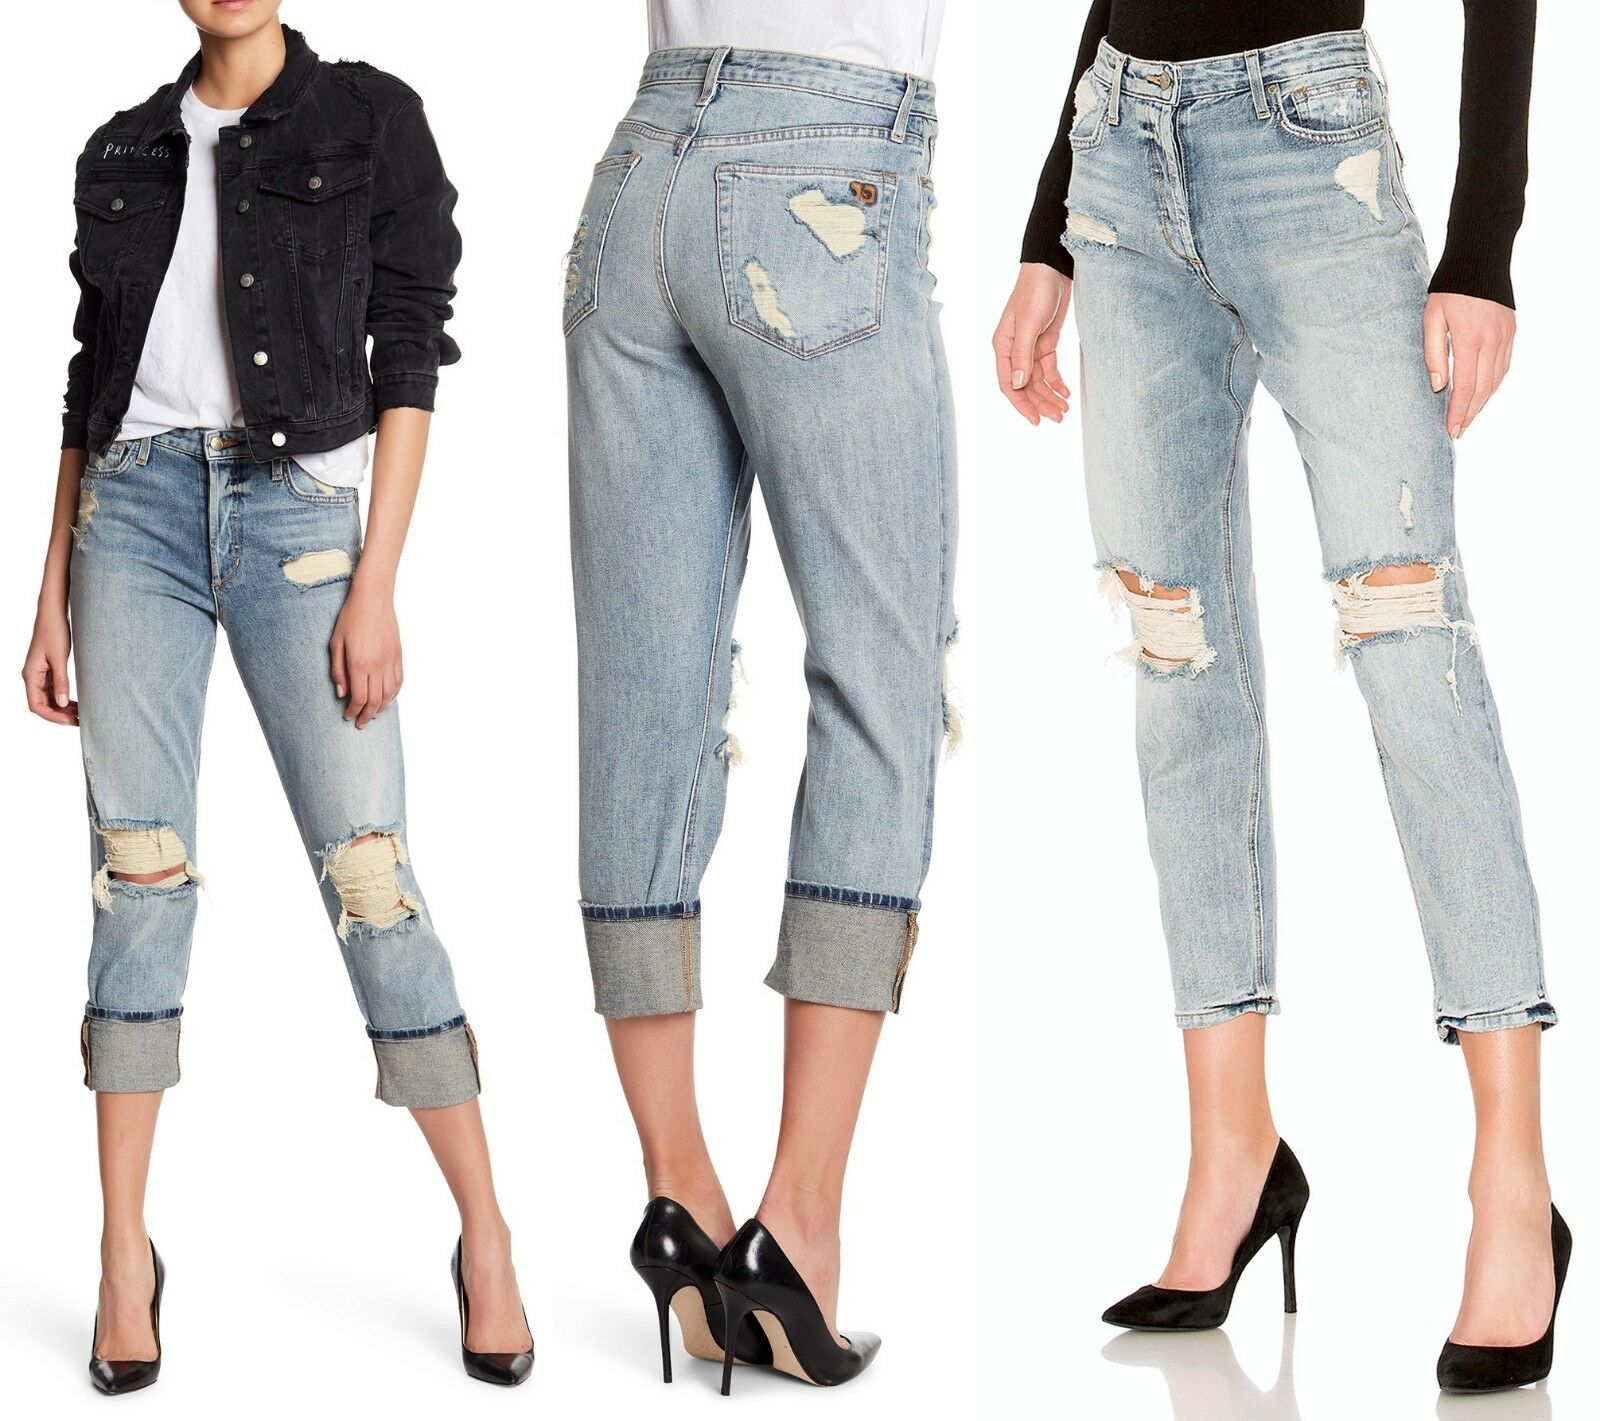 235 Joe's Jeans The Smith High Rise Straight Ankle Serafina Distressed Jeans 32